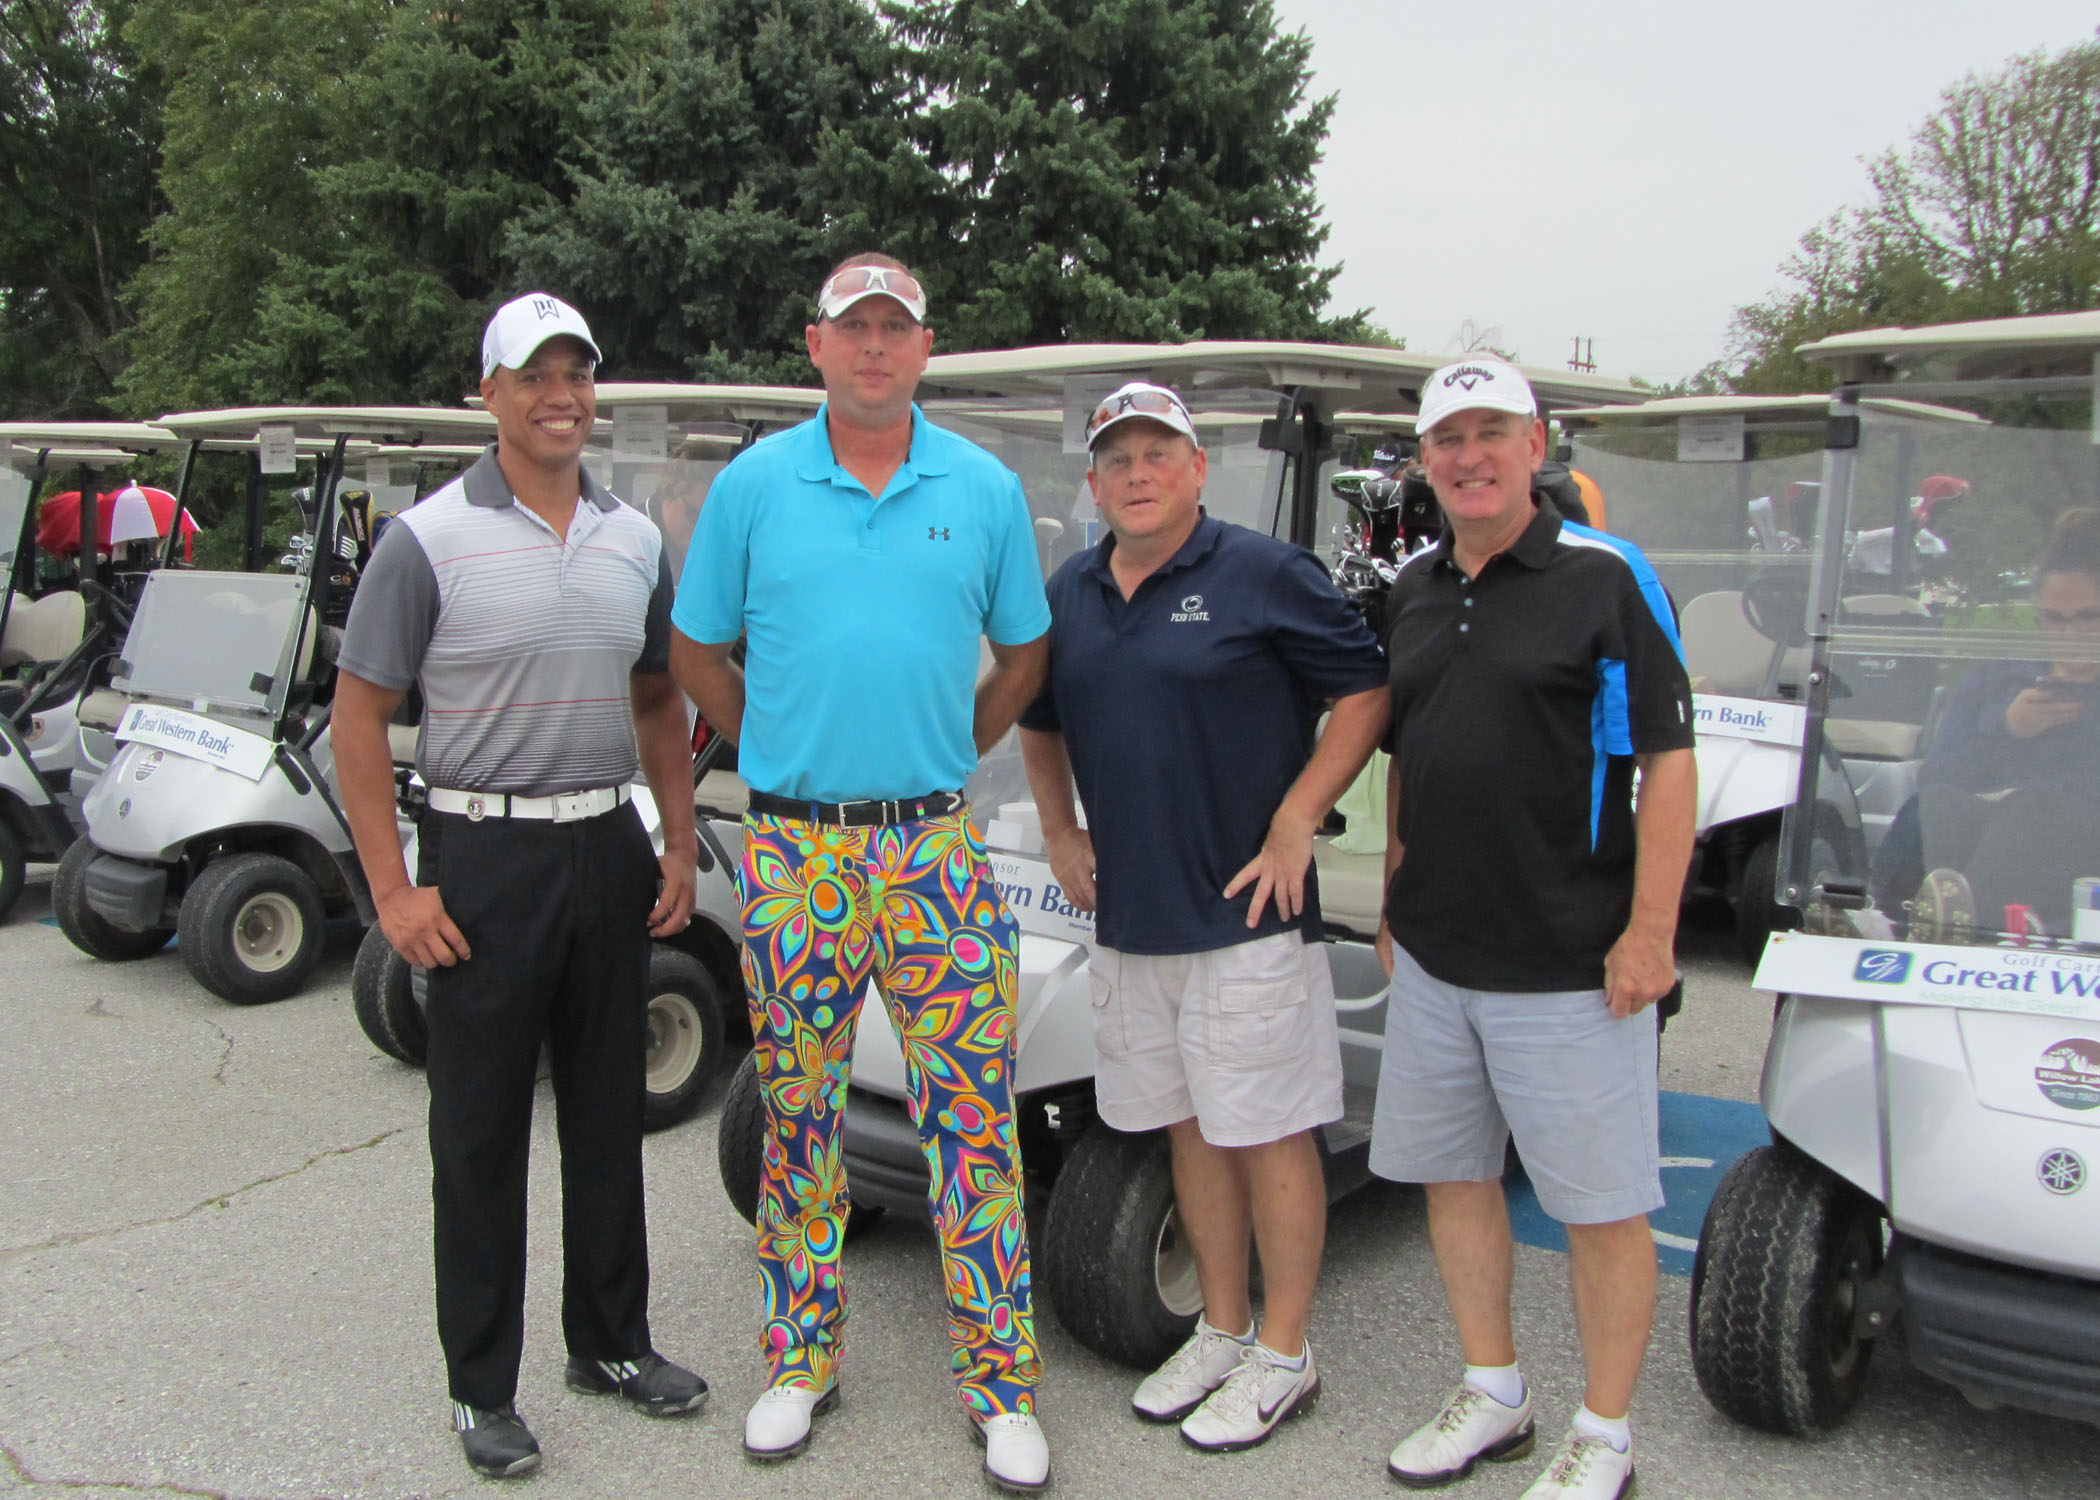 """The winning team of the whole tournament also had a member with the """"Best Dressed Individual"""" award! Congratulations Corey Whigham! (Duane Smith, Corey Whigham, Rodney Mills, Dan Hamilton)"""